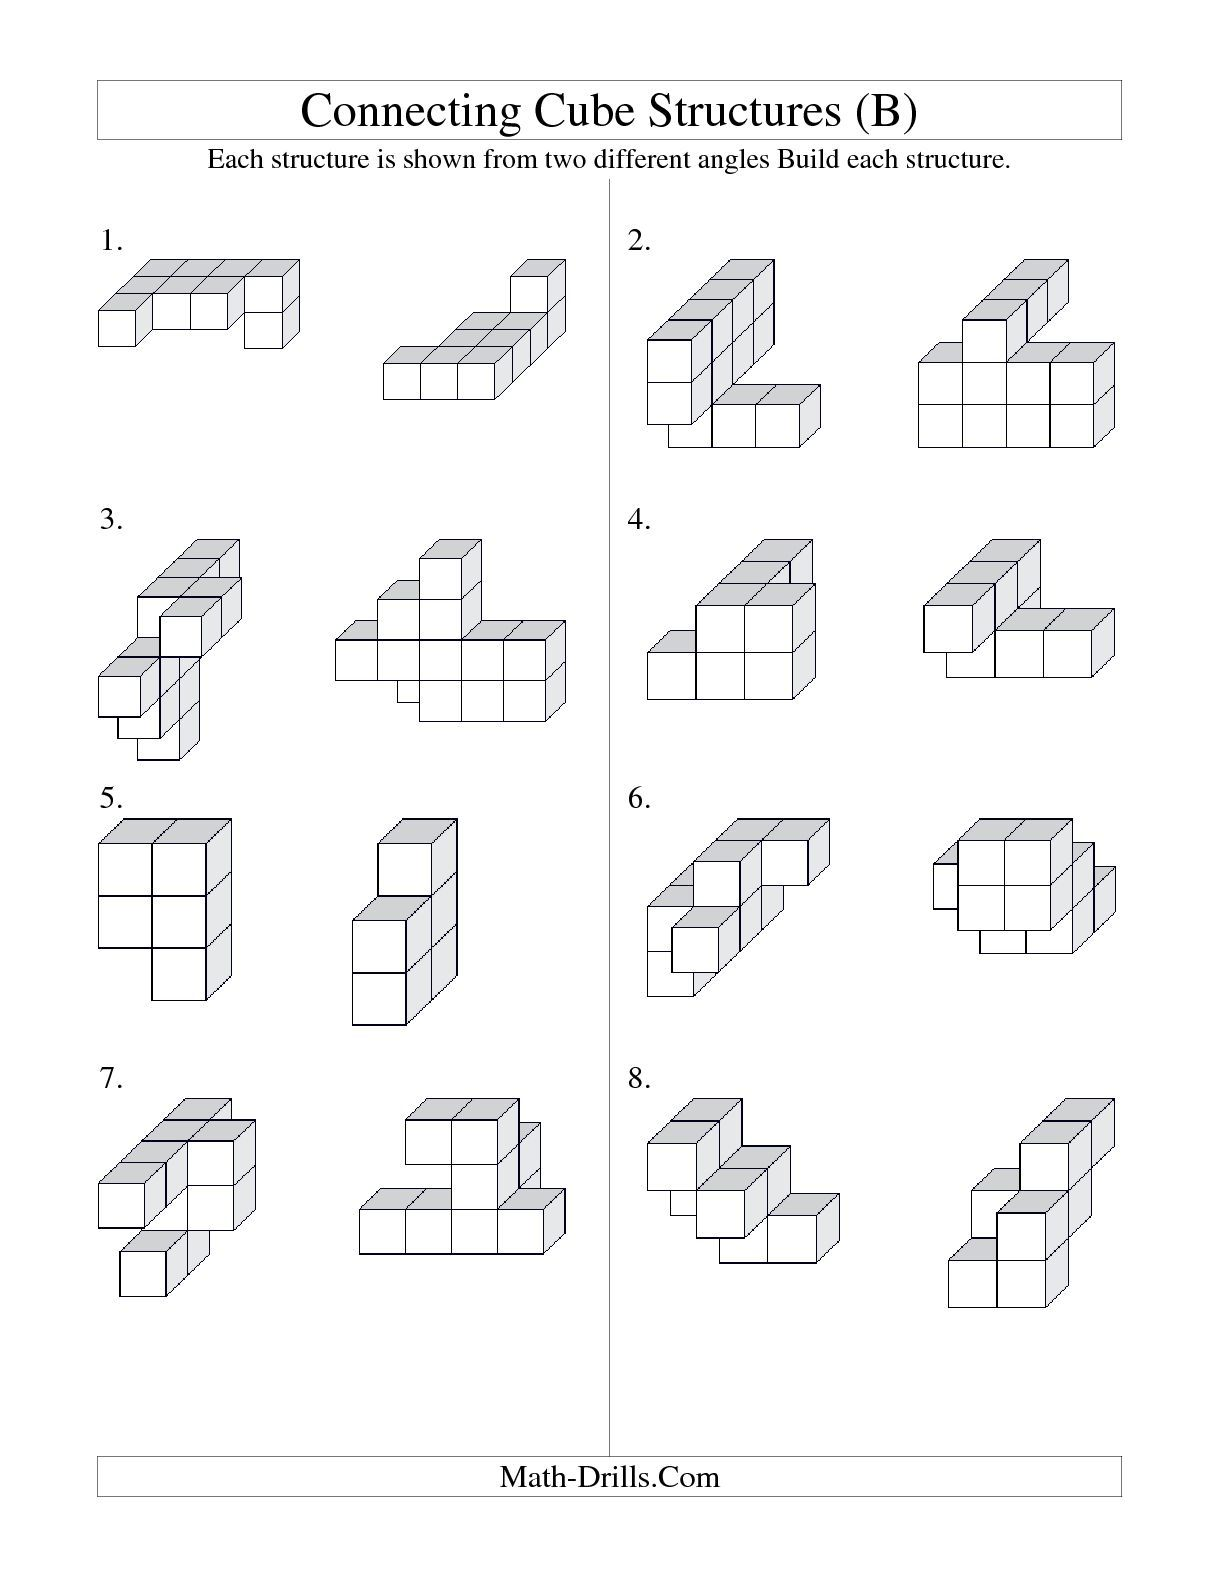 Worksheets Construction Math Worksheets geo ccstructuresbuild 002 pin jpg construction jpg